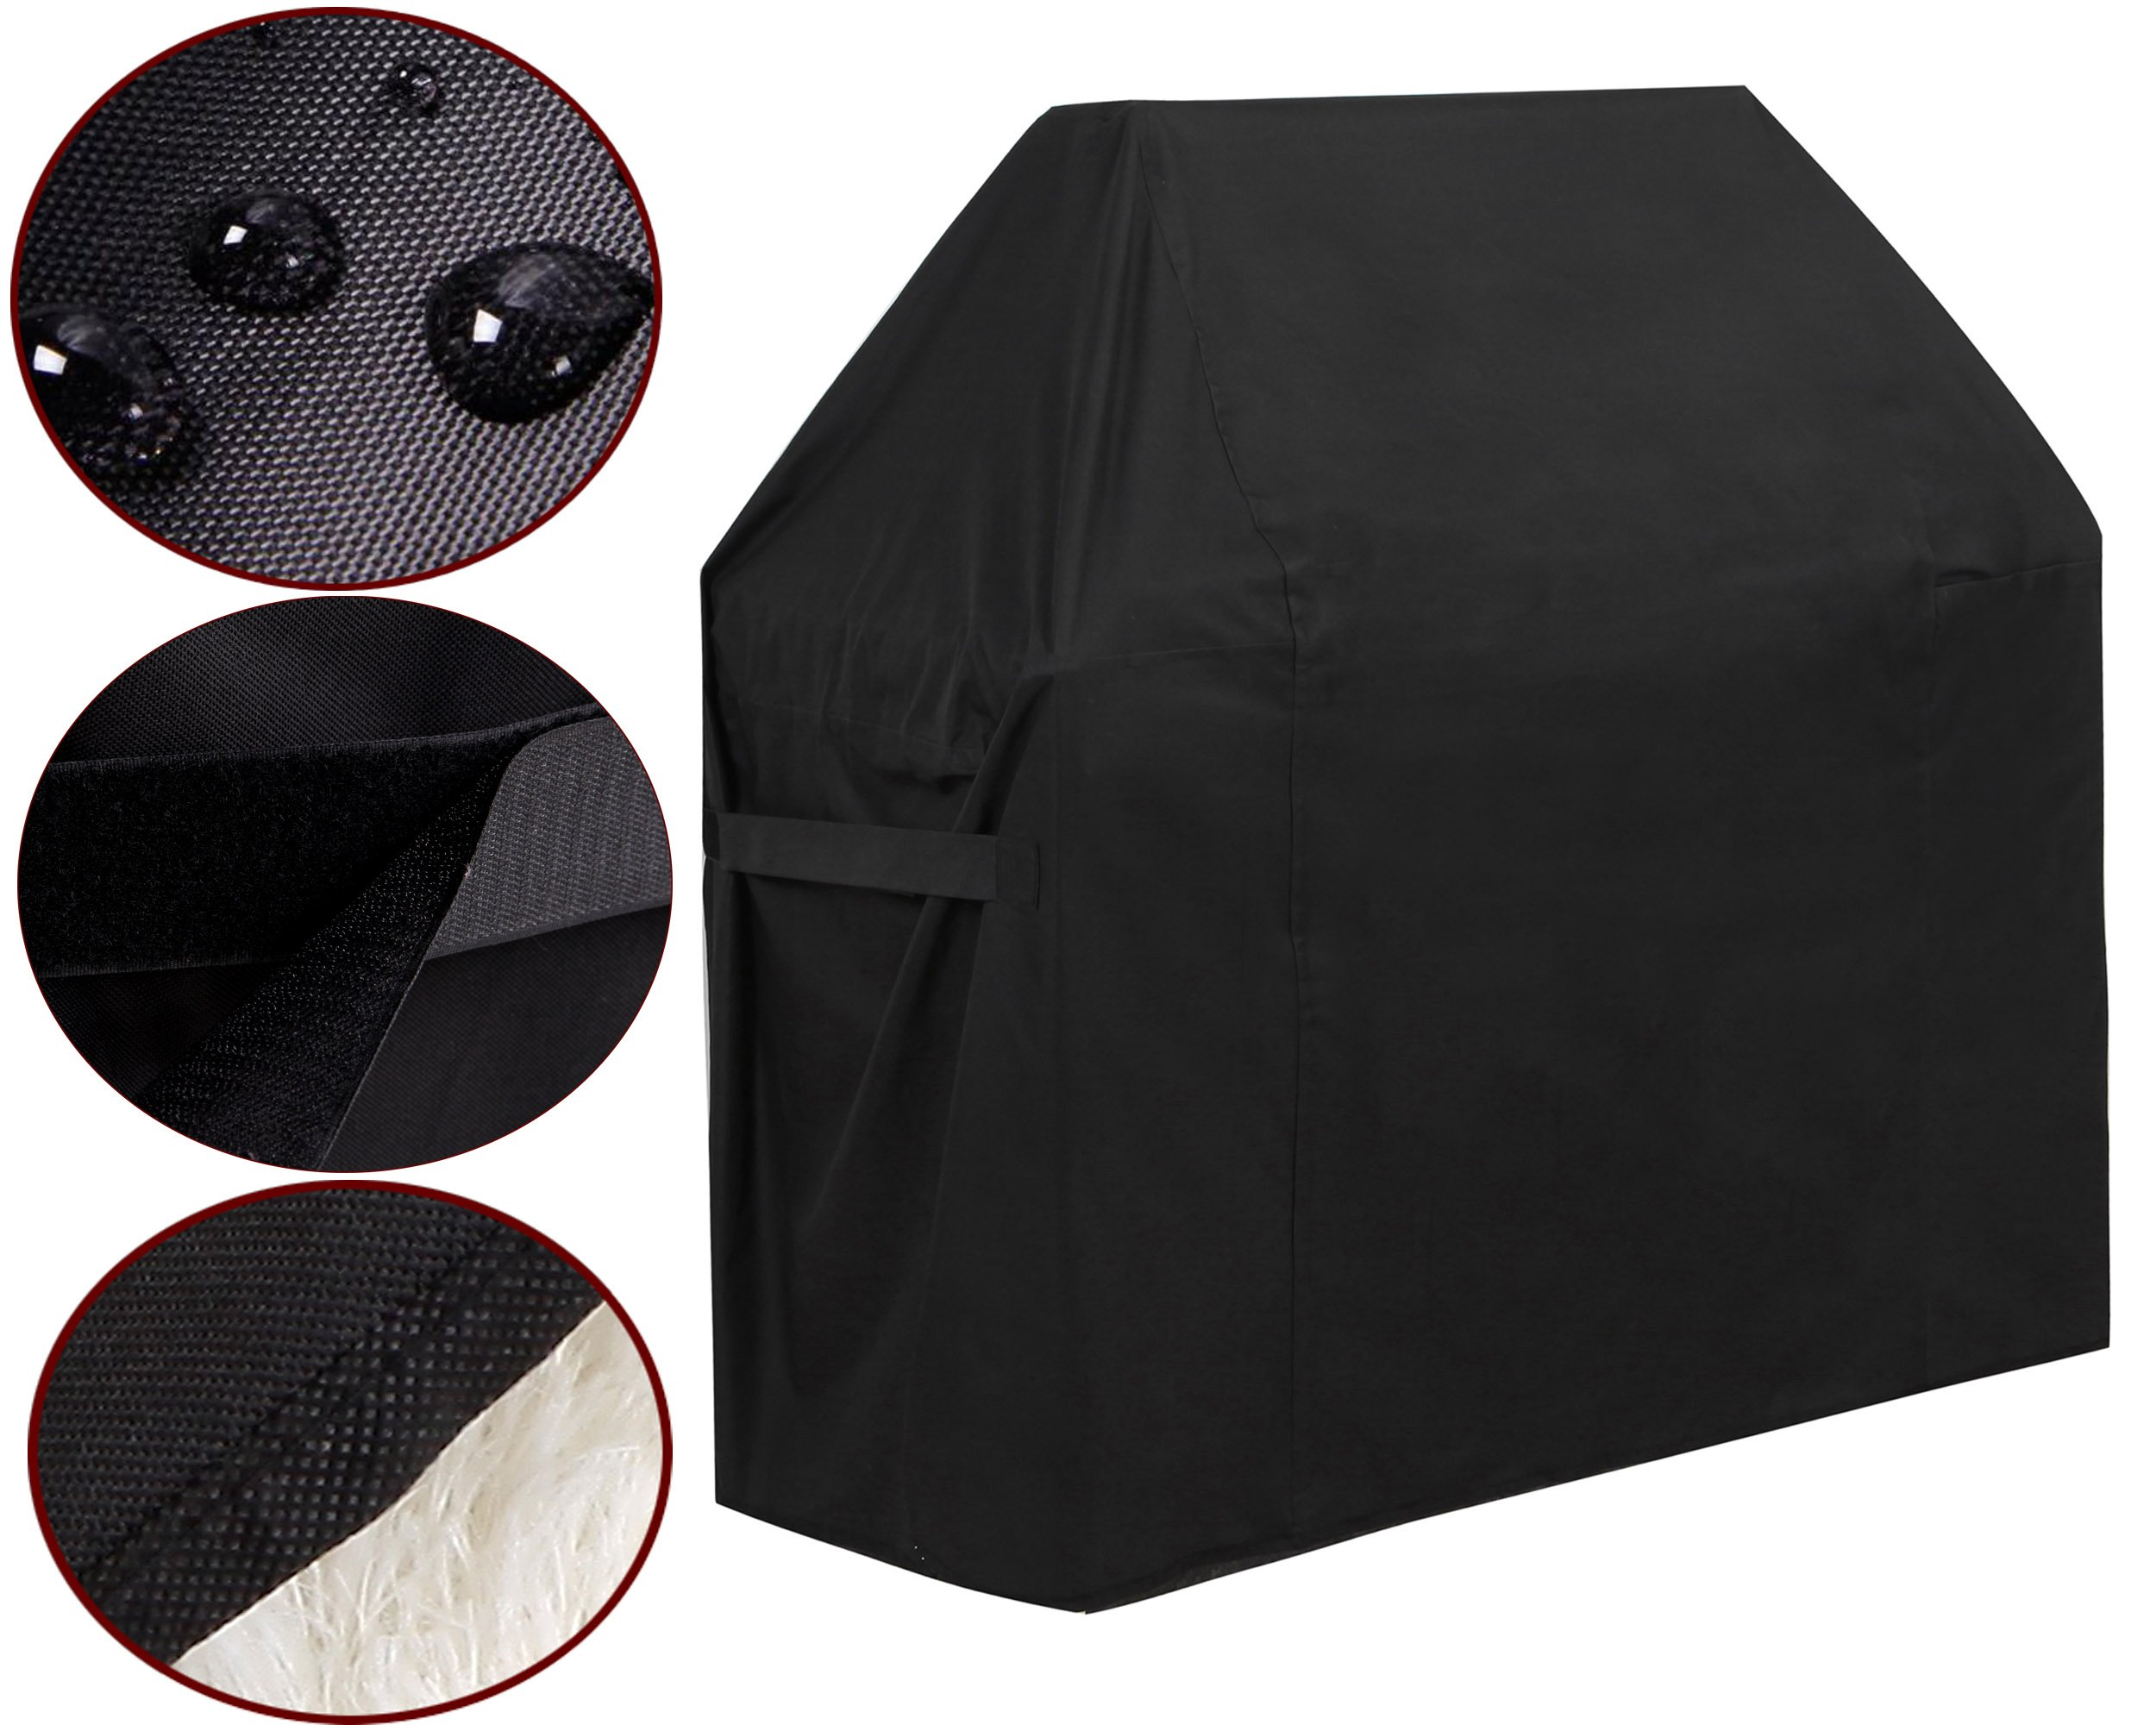 "GoProver BBQ Gas Grill Cover, fits up to 58"" L x 24"" D x 48"" H 600D Heavy Duty BBQ Gas Grill Cover for Genesis E and S Series Gas Grills Outdoor Barbeque Grill Covers Waterproof & Weather Resistant"